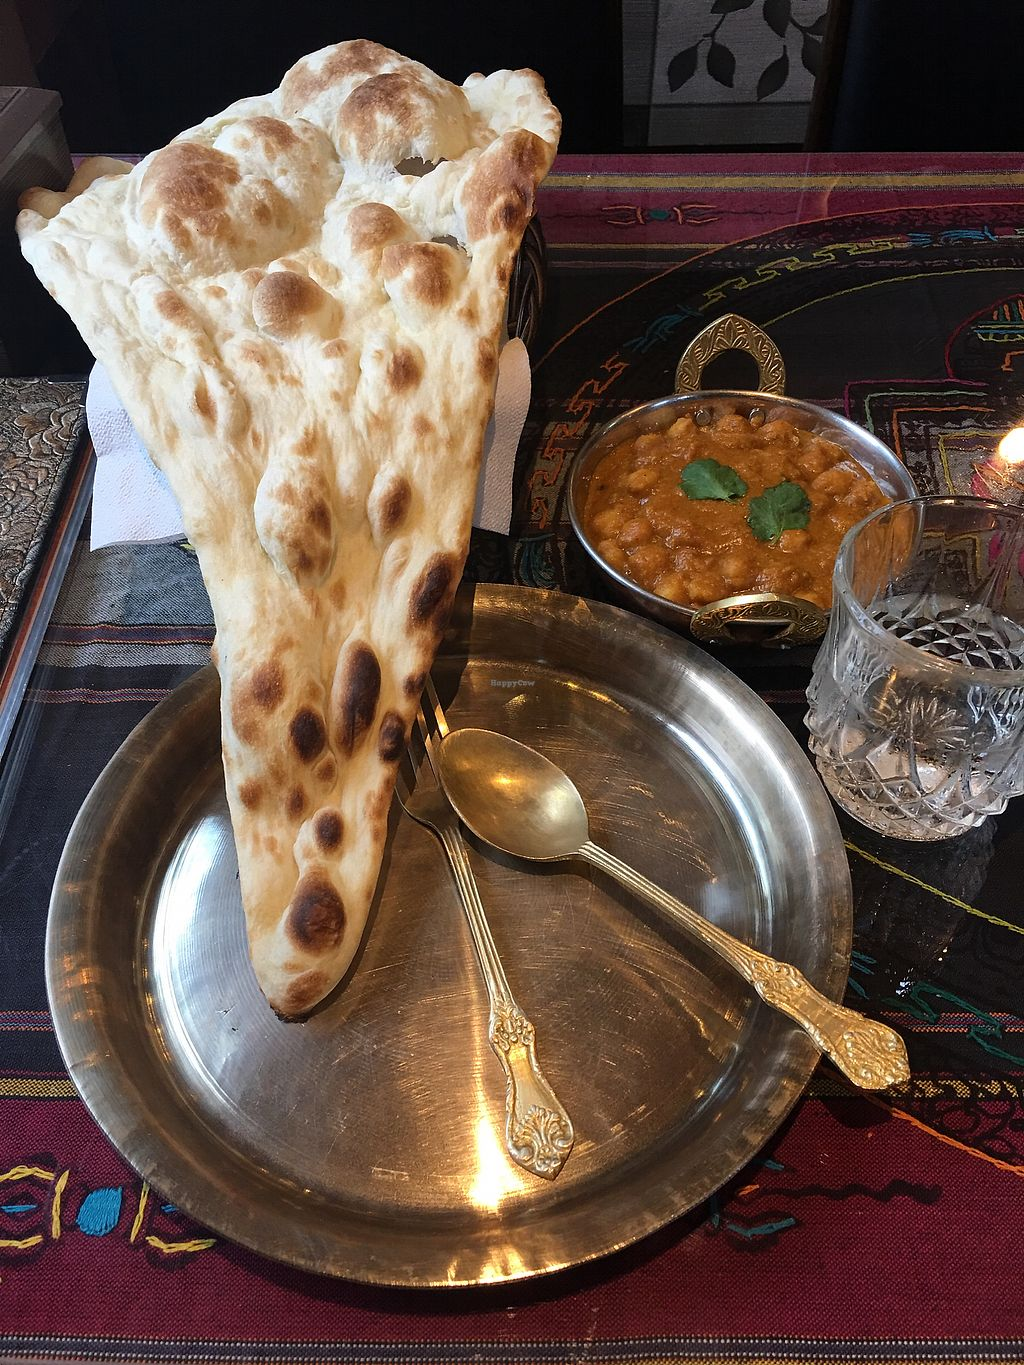 """Photo of Himalayan Restaurant - 히말라얀 레스토랑  by <a href=""""/members/profile/AnnaVa"""">AnnaVa</a> <br/>Delicious! Menu is in English.  <br/> March 15, 2018  - <a href='/contact/abuse/image/81286/370822'>Report</a>"""